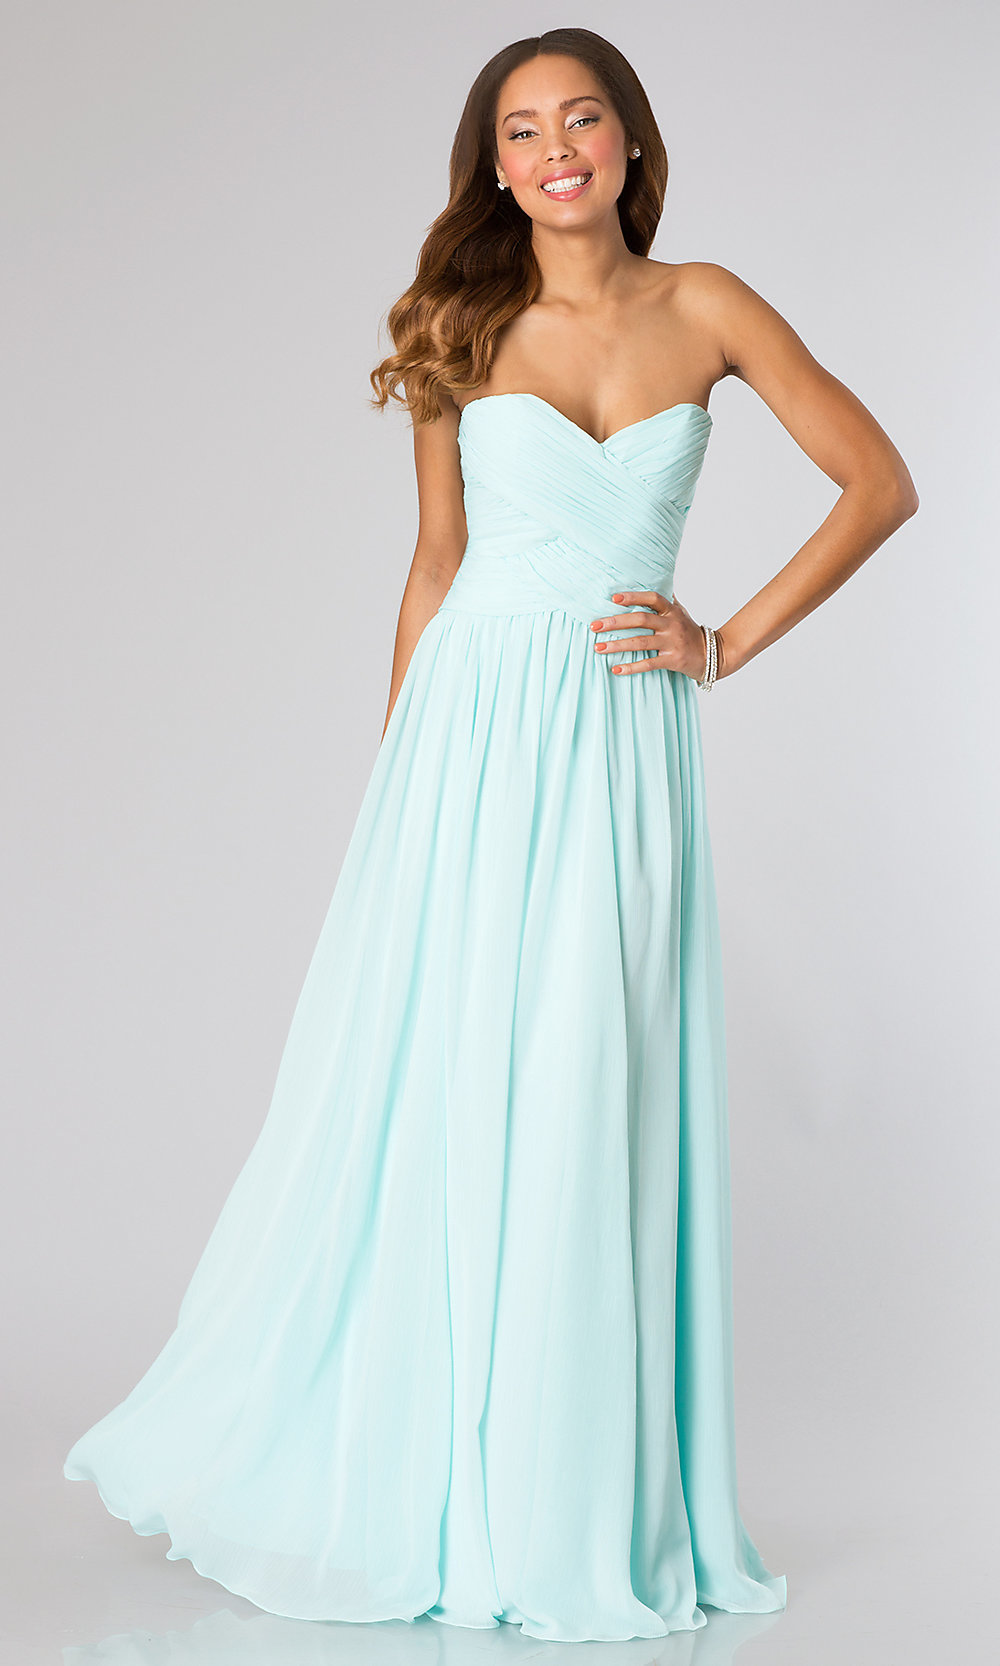 Mori Lee Long Strapless Bridesmaid Dress- PromGirl